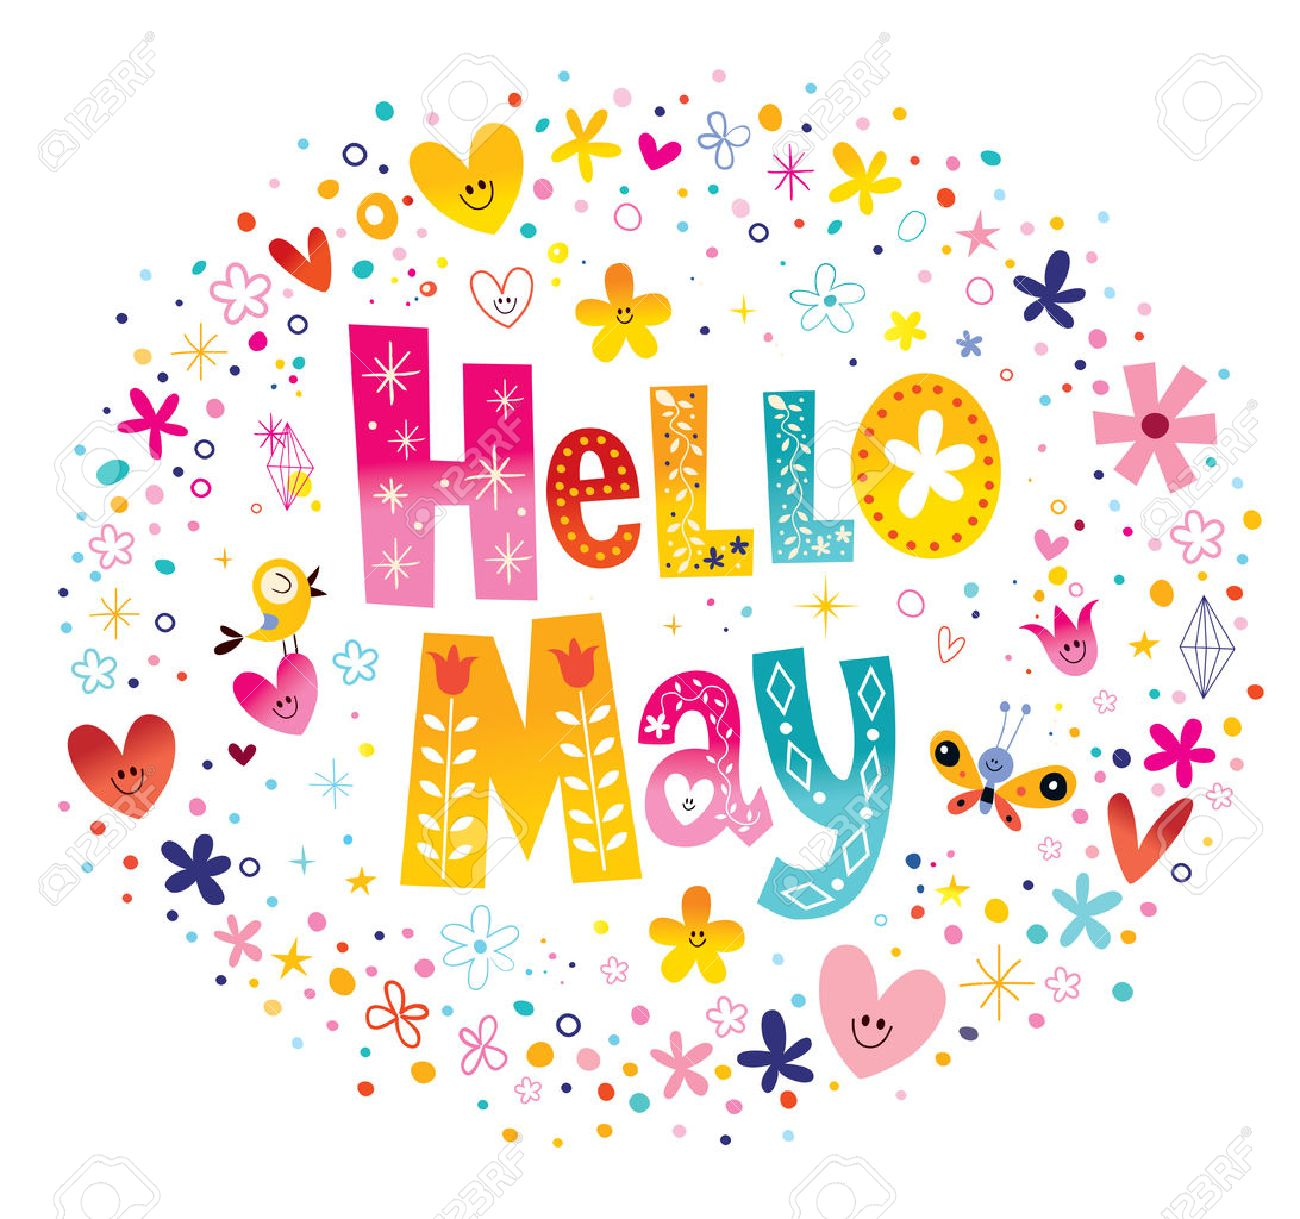 54721746-hello-may-unique-lettering-with-flowers-and-hearts-spring-design.jpg